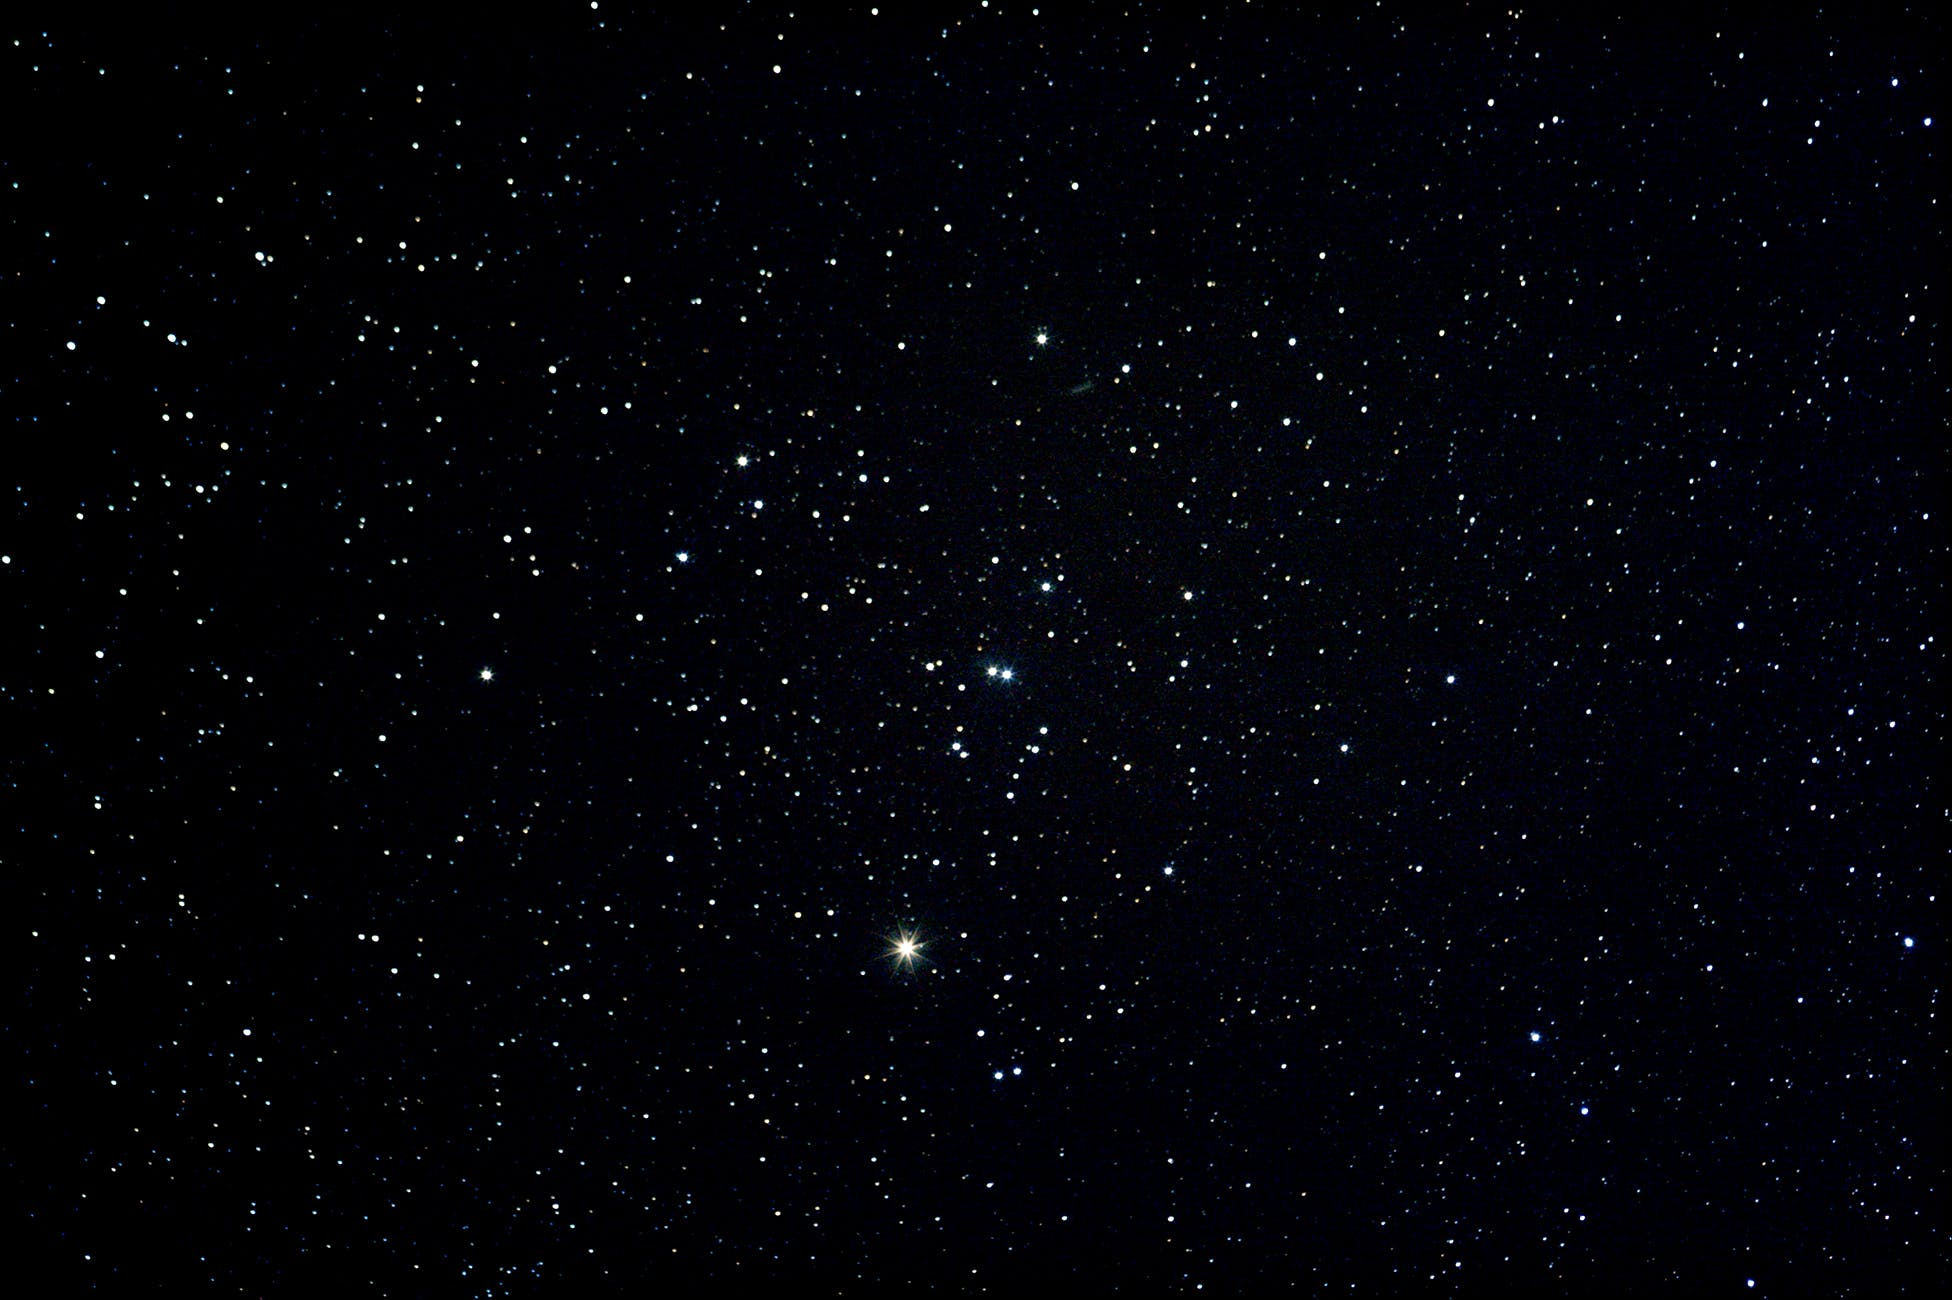 The Hyades cluster of stars in the constellation Taurus